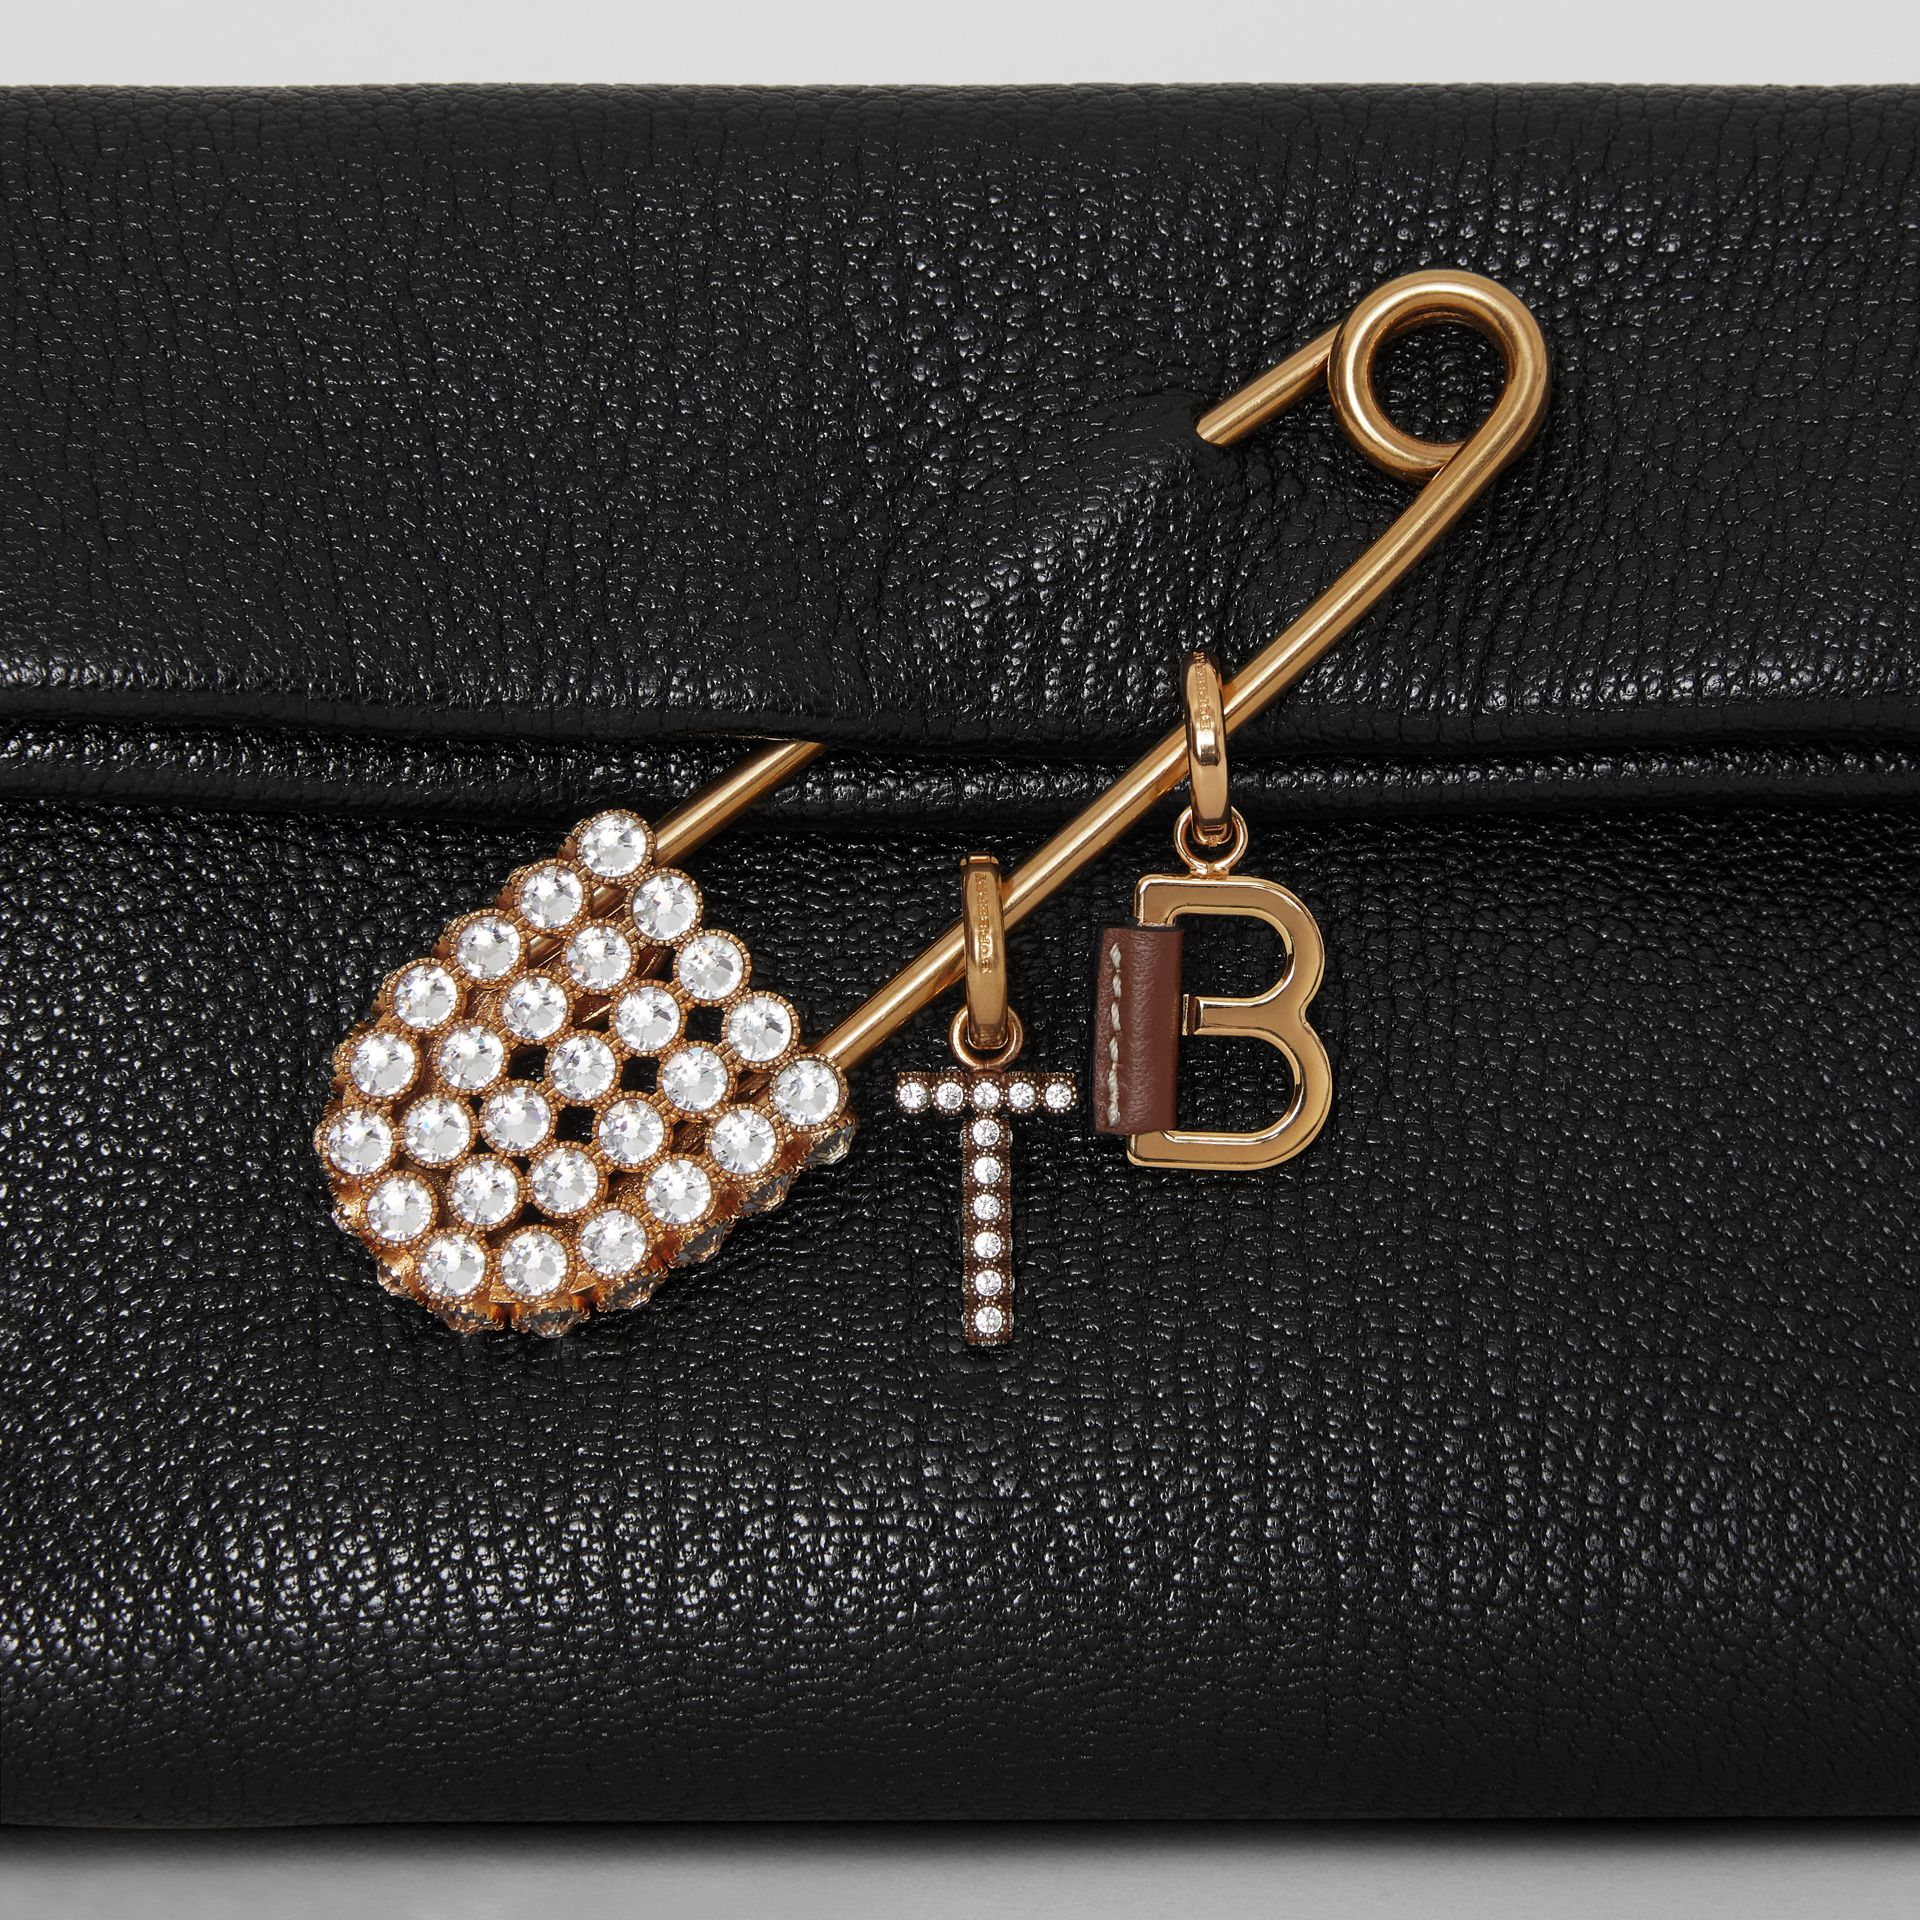 Leather-topstitched 'S' Alphabet Charm in Palladio/black - Women | Burberry Singapore - gallery image 2